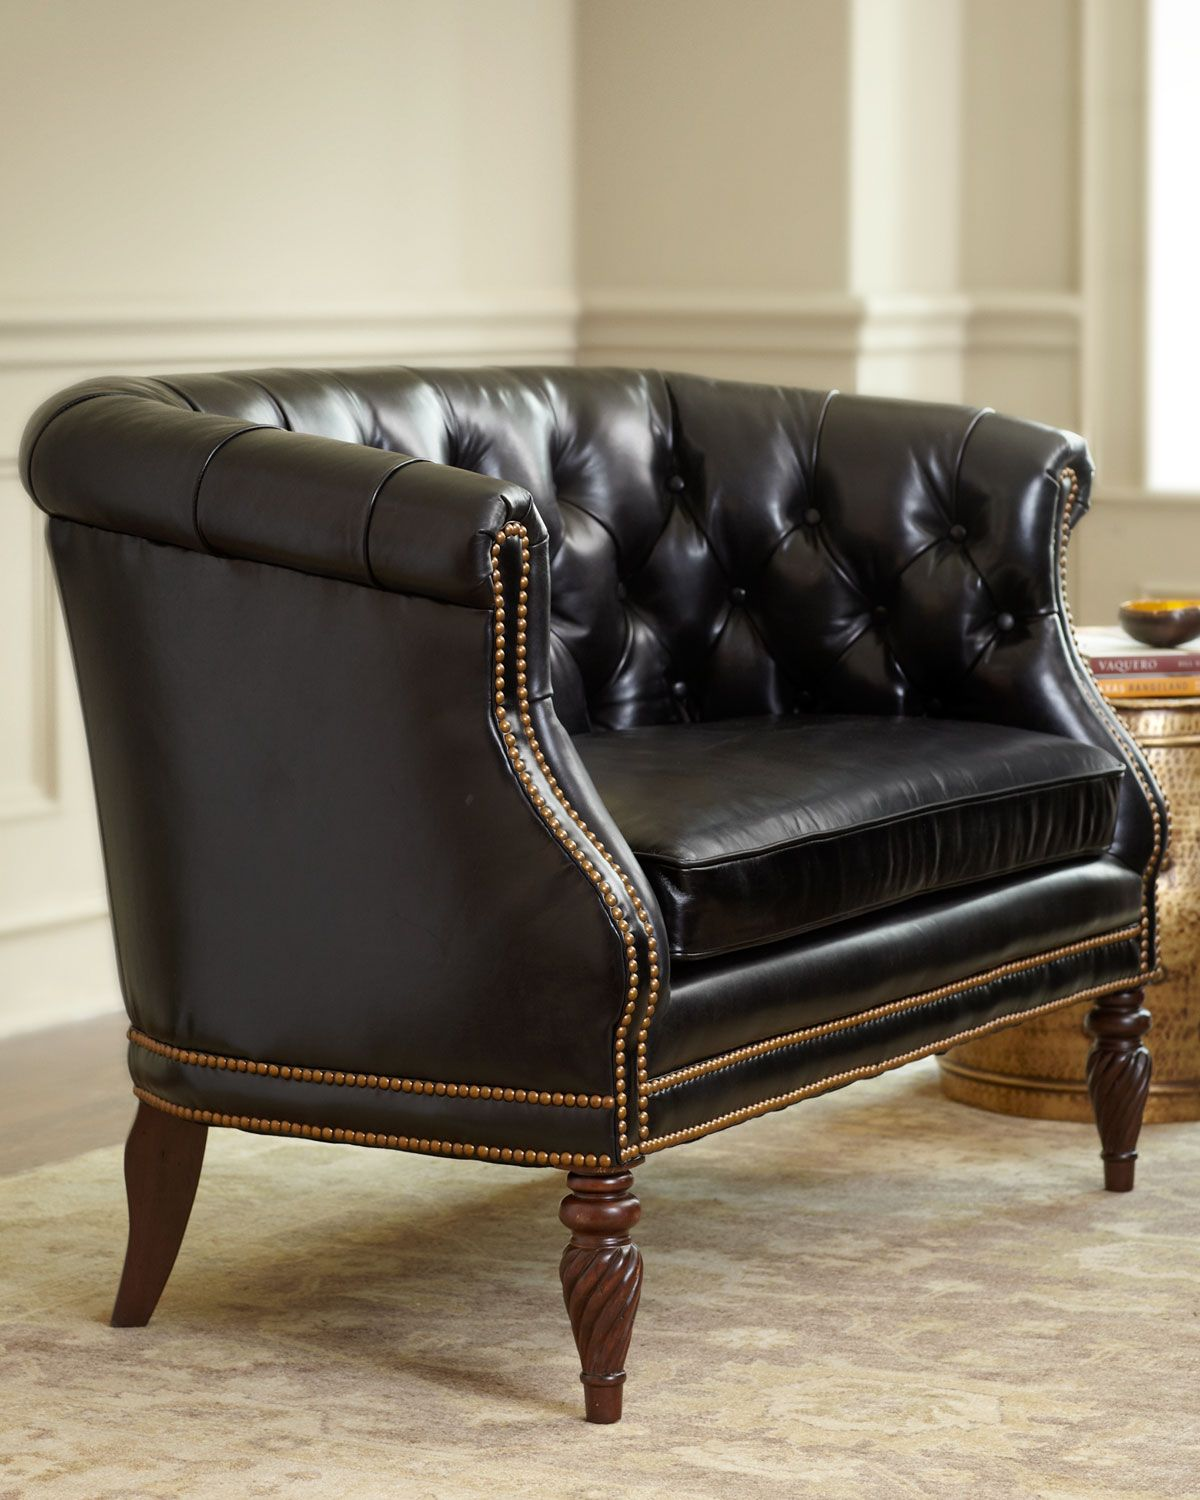 Gables TuftedLeather Settee Leather settees, Tufted